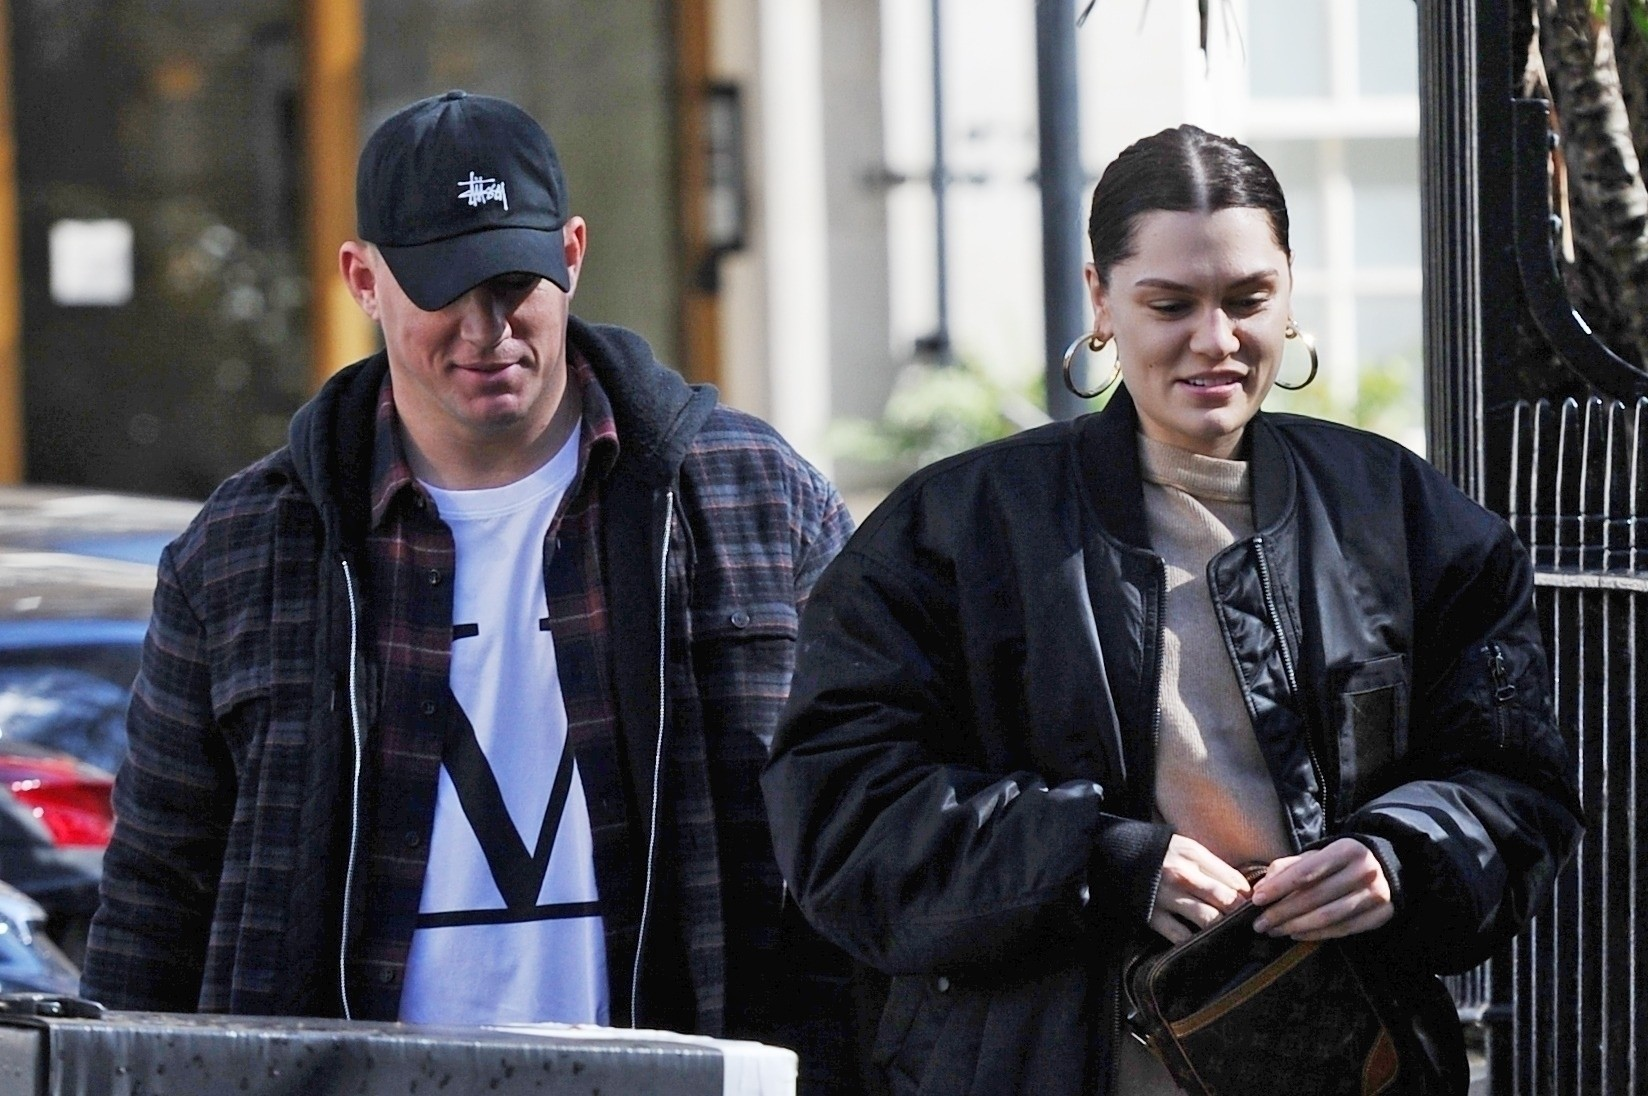 Channing Tatum and Jessie J reportedly back together again after near two-month split